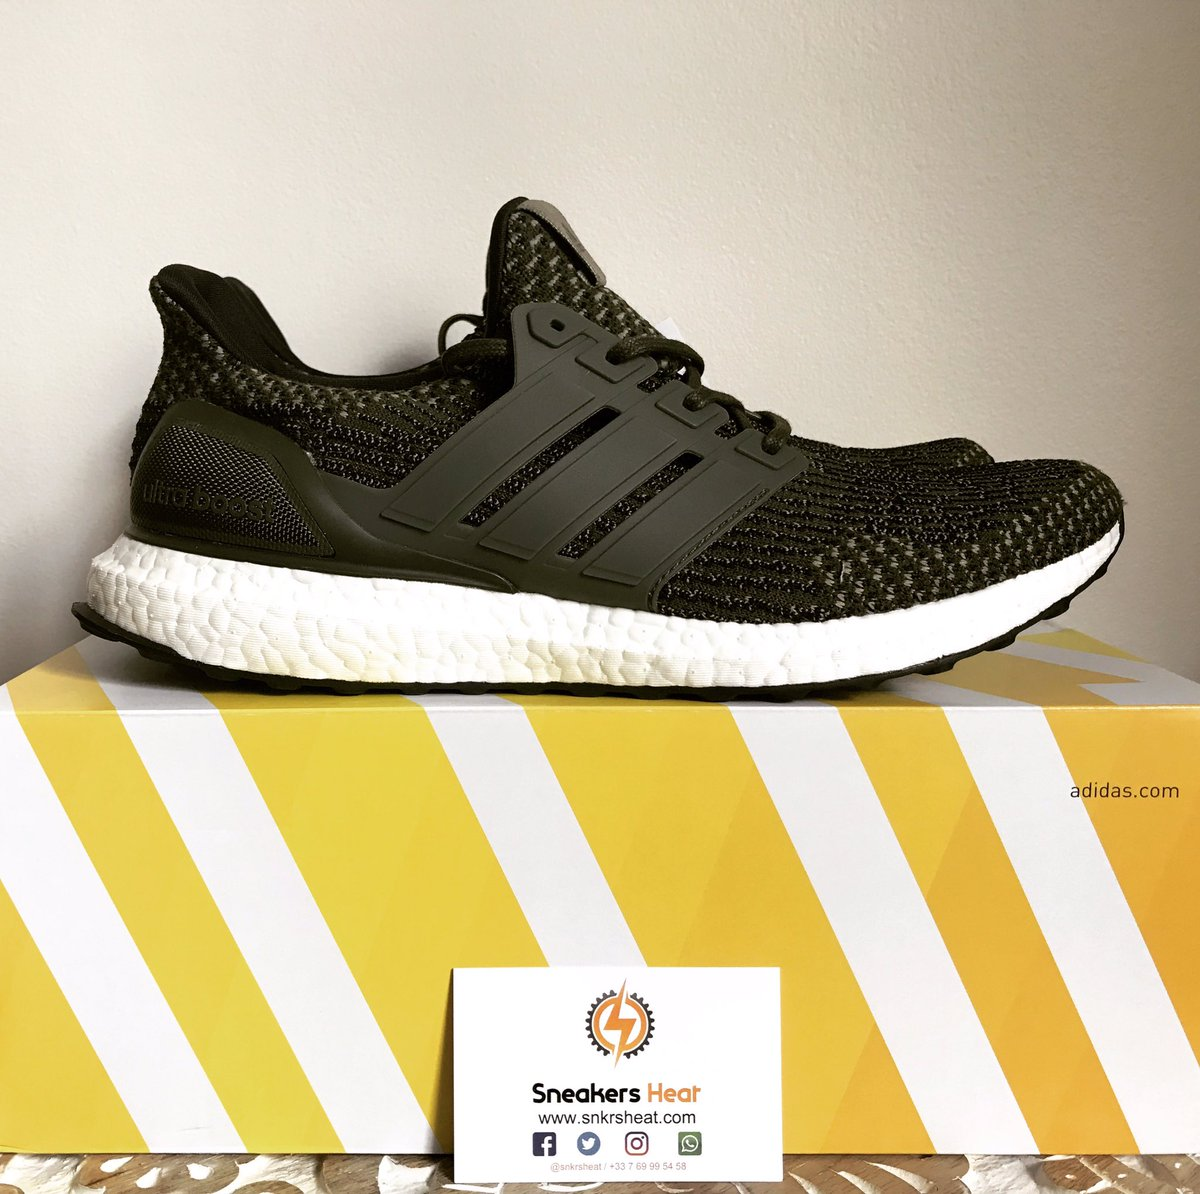 Adidas Ultra Boost 3.0 LTD Triple Black BA8920 Limited Edition